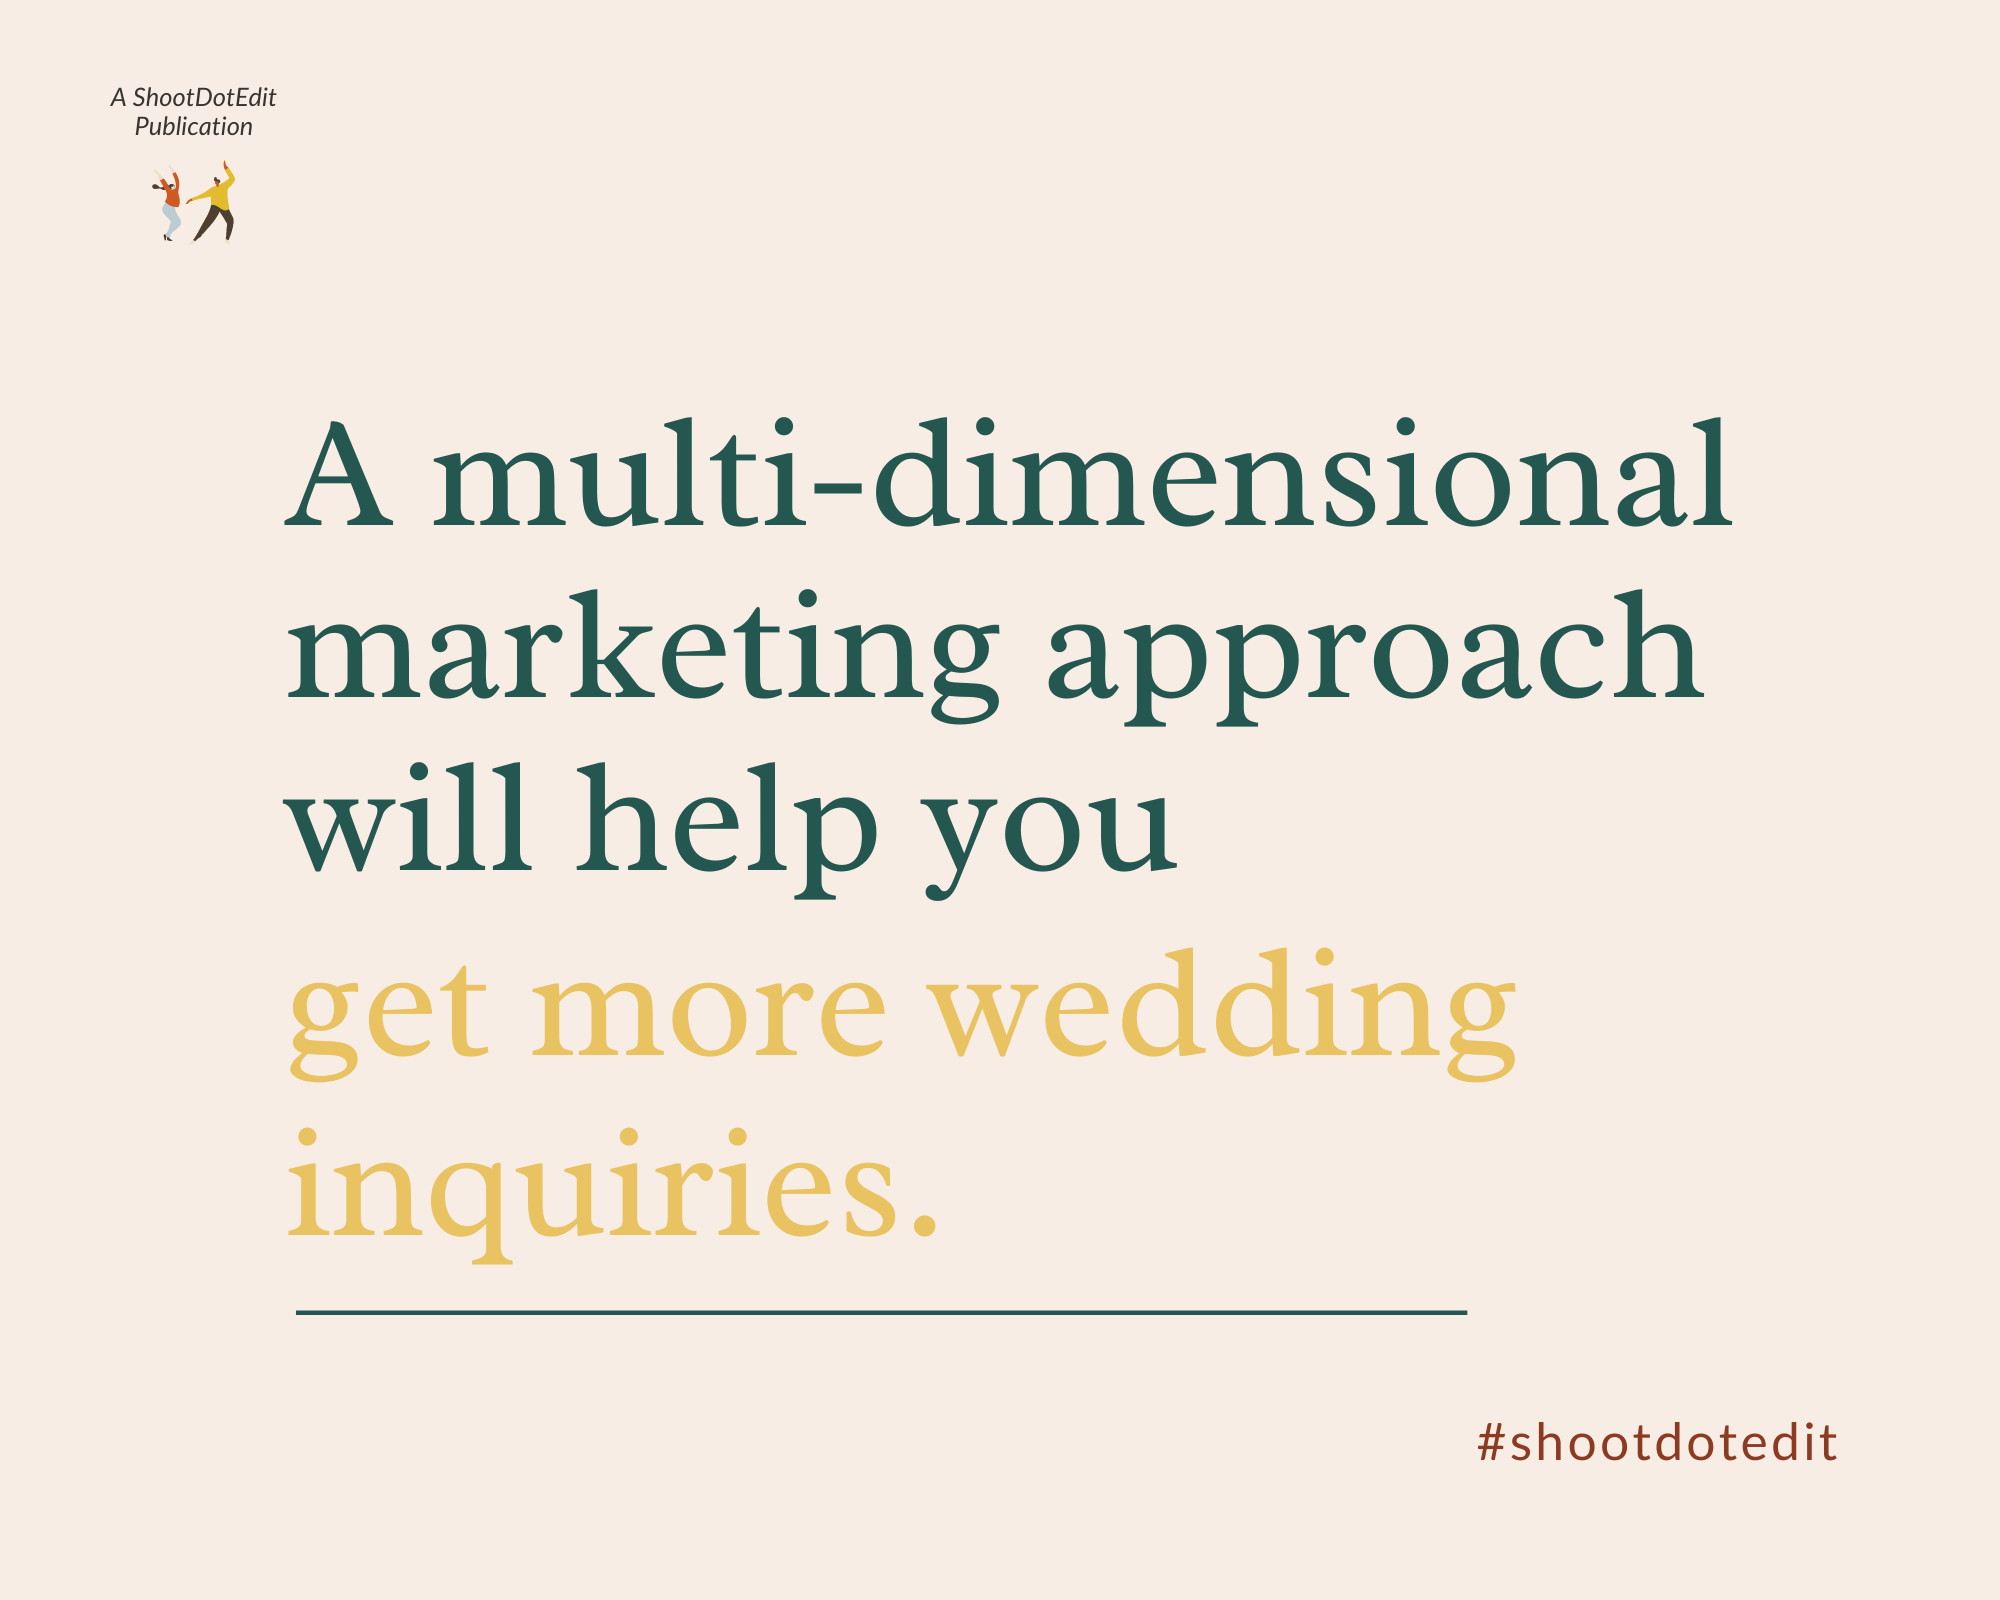 Infographic stating a multi-dimensional marketing approach will help you get more wedding inquiries